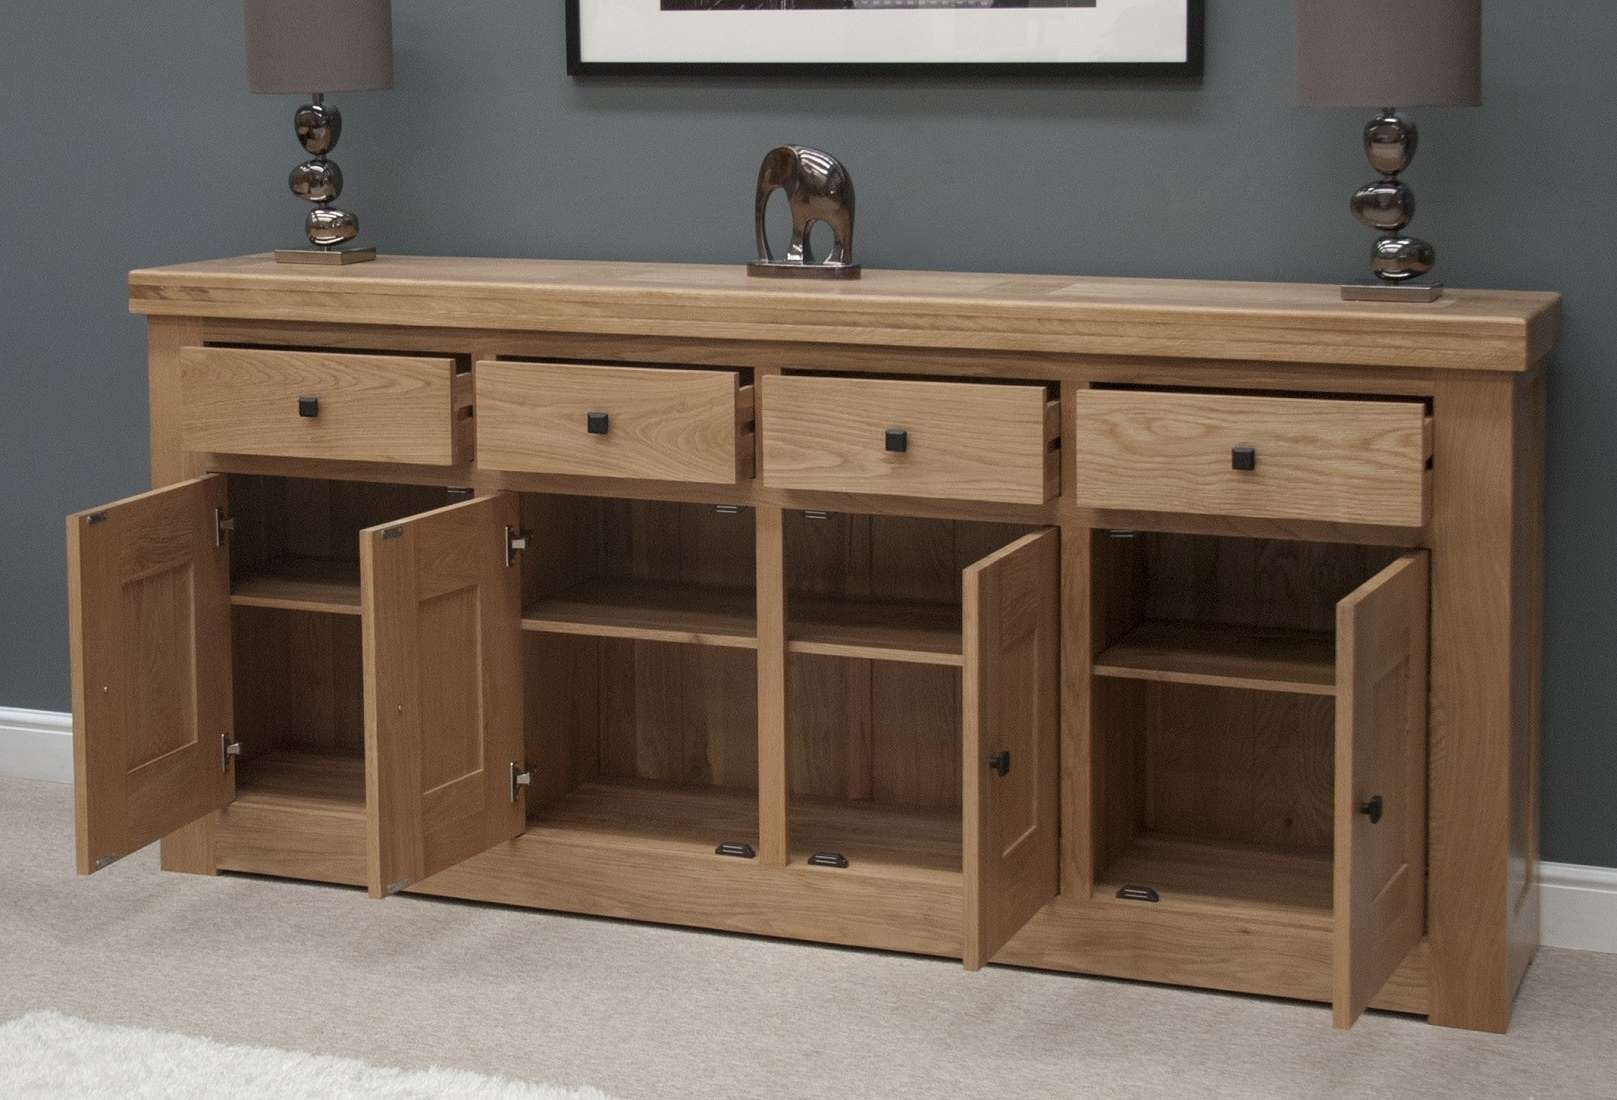 French Bordeaux Oak Extra Large 4 Door Sideboard | Oak Furniture Uk Inside Sideboards (View 9 of 20)